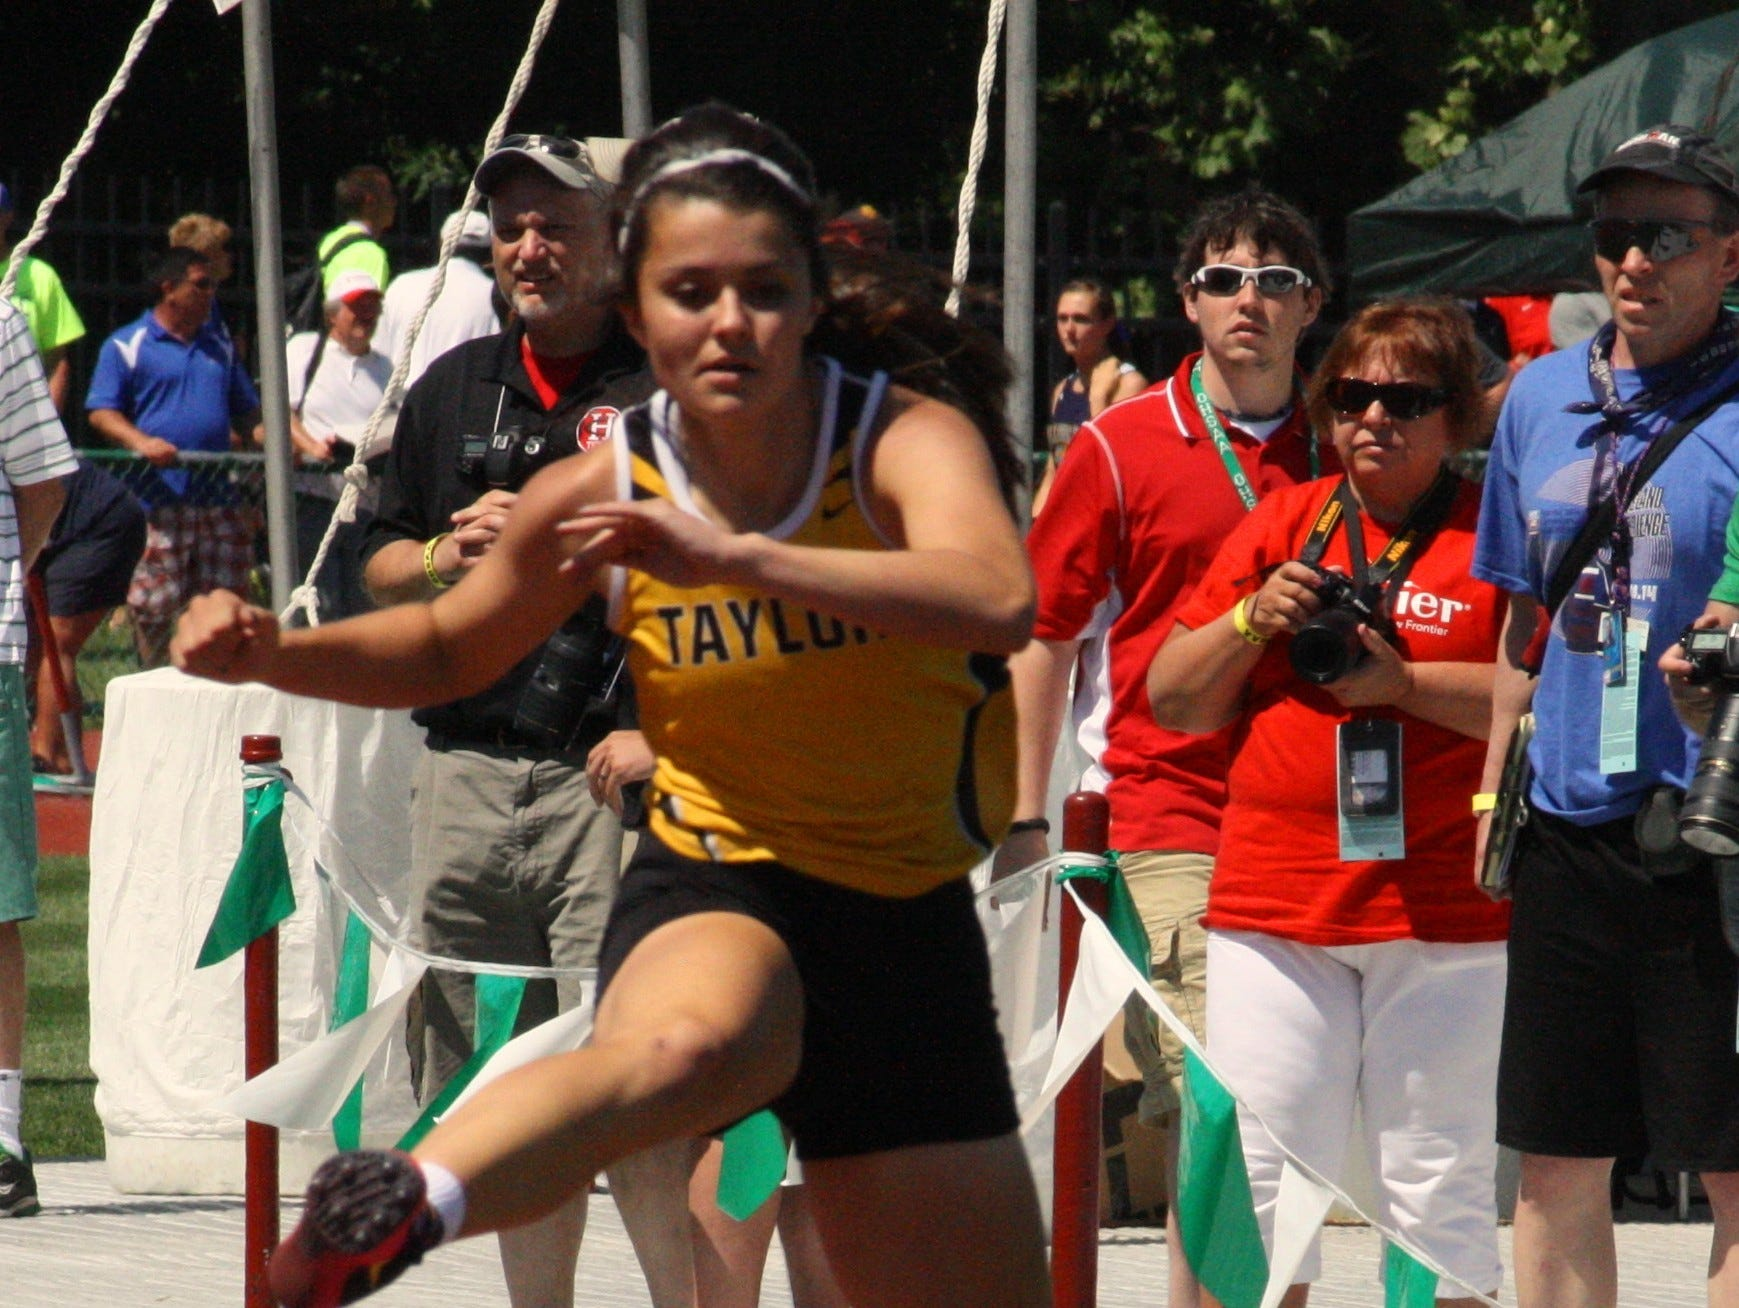 Taylor's Lizzi Lakamp competes in a 300-meter hurdles semifinal heat at the Division II state track and field championships June 6 last season at Jesse Owens Memorial Stadium at Ohio State University.